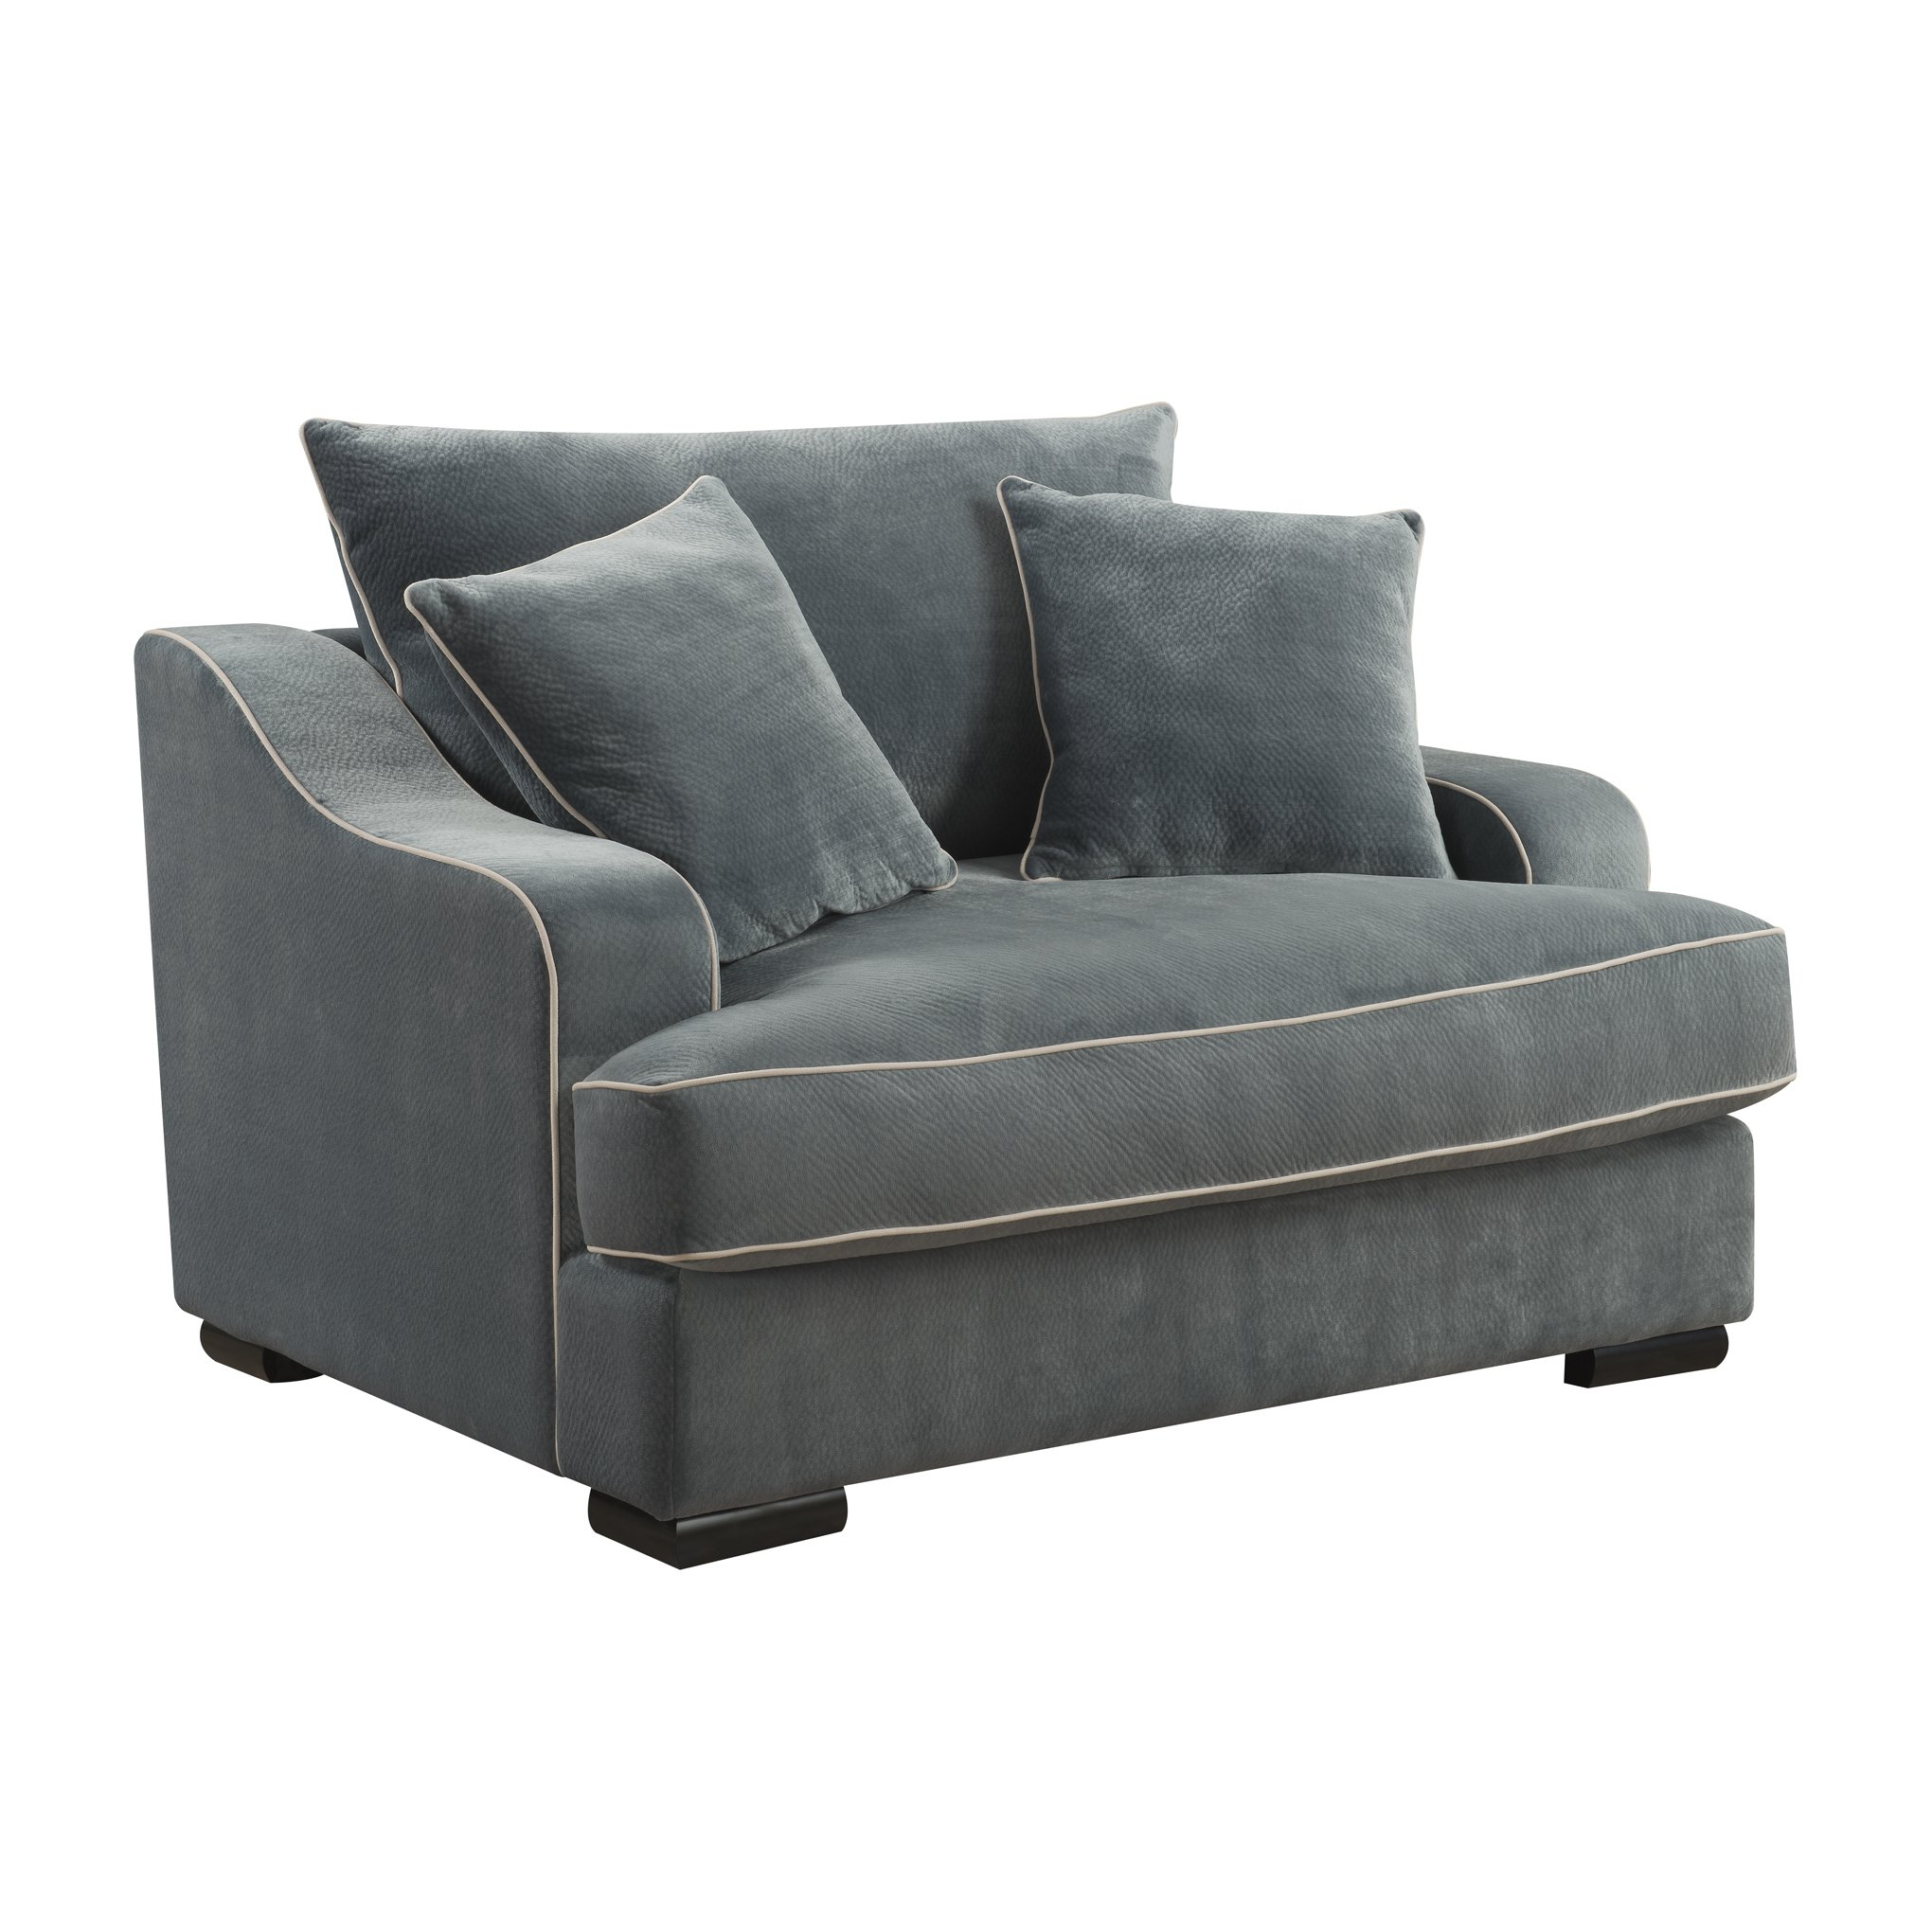 Shop Emerald Home Caresse Marine Blue Plush Oversized Chair – Free With Regard To Caressa Leather Dove Grey Sofa Chairs (Image 19 of 20)